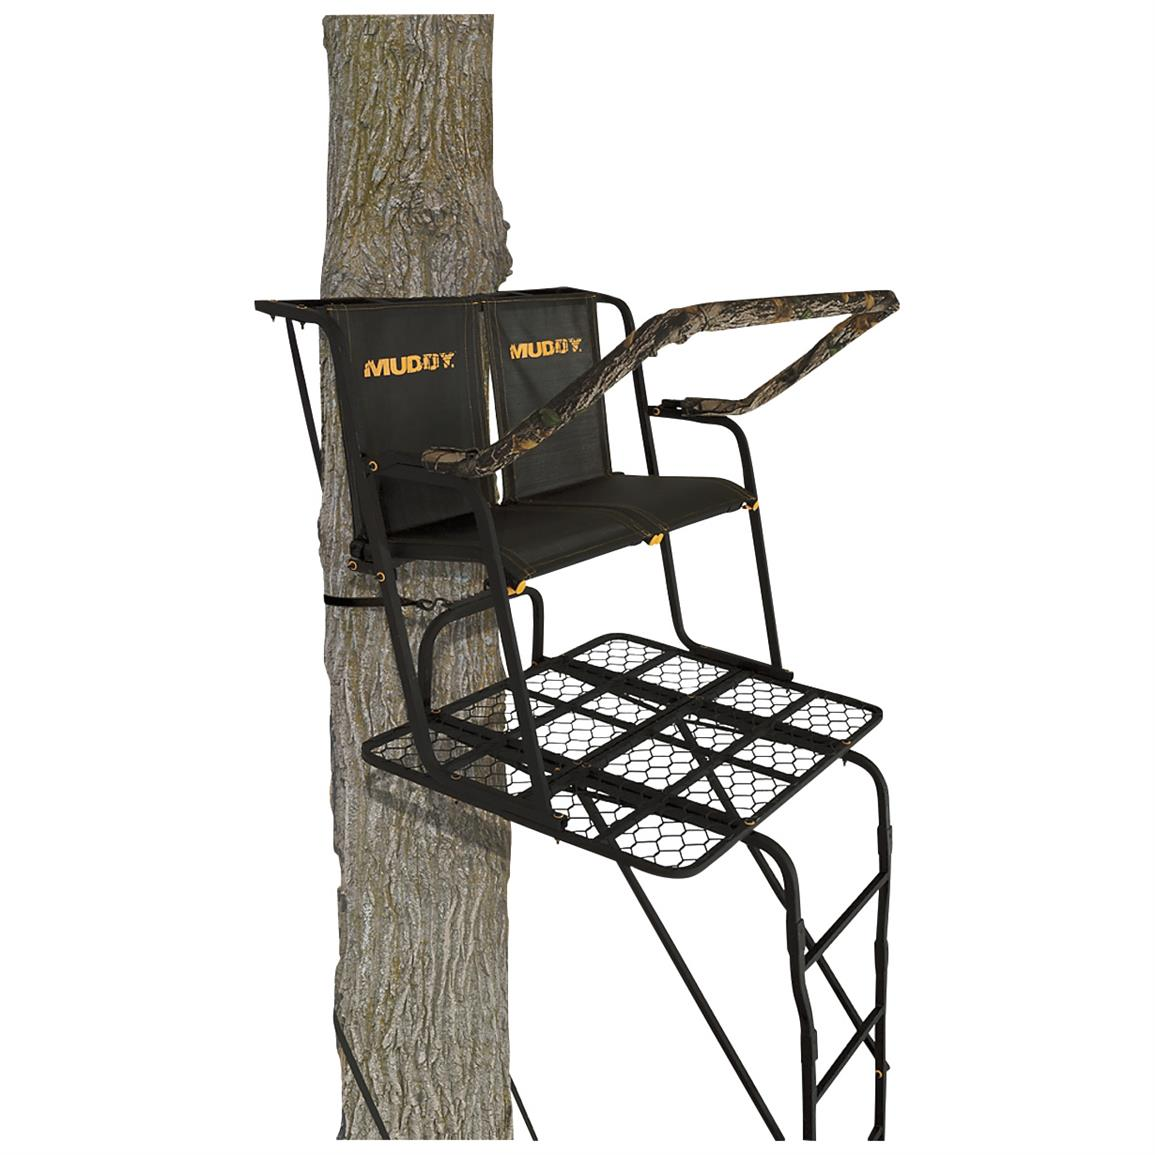 Muddy Partner 17 foot Ladder Tree Stand